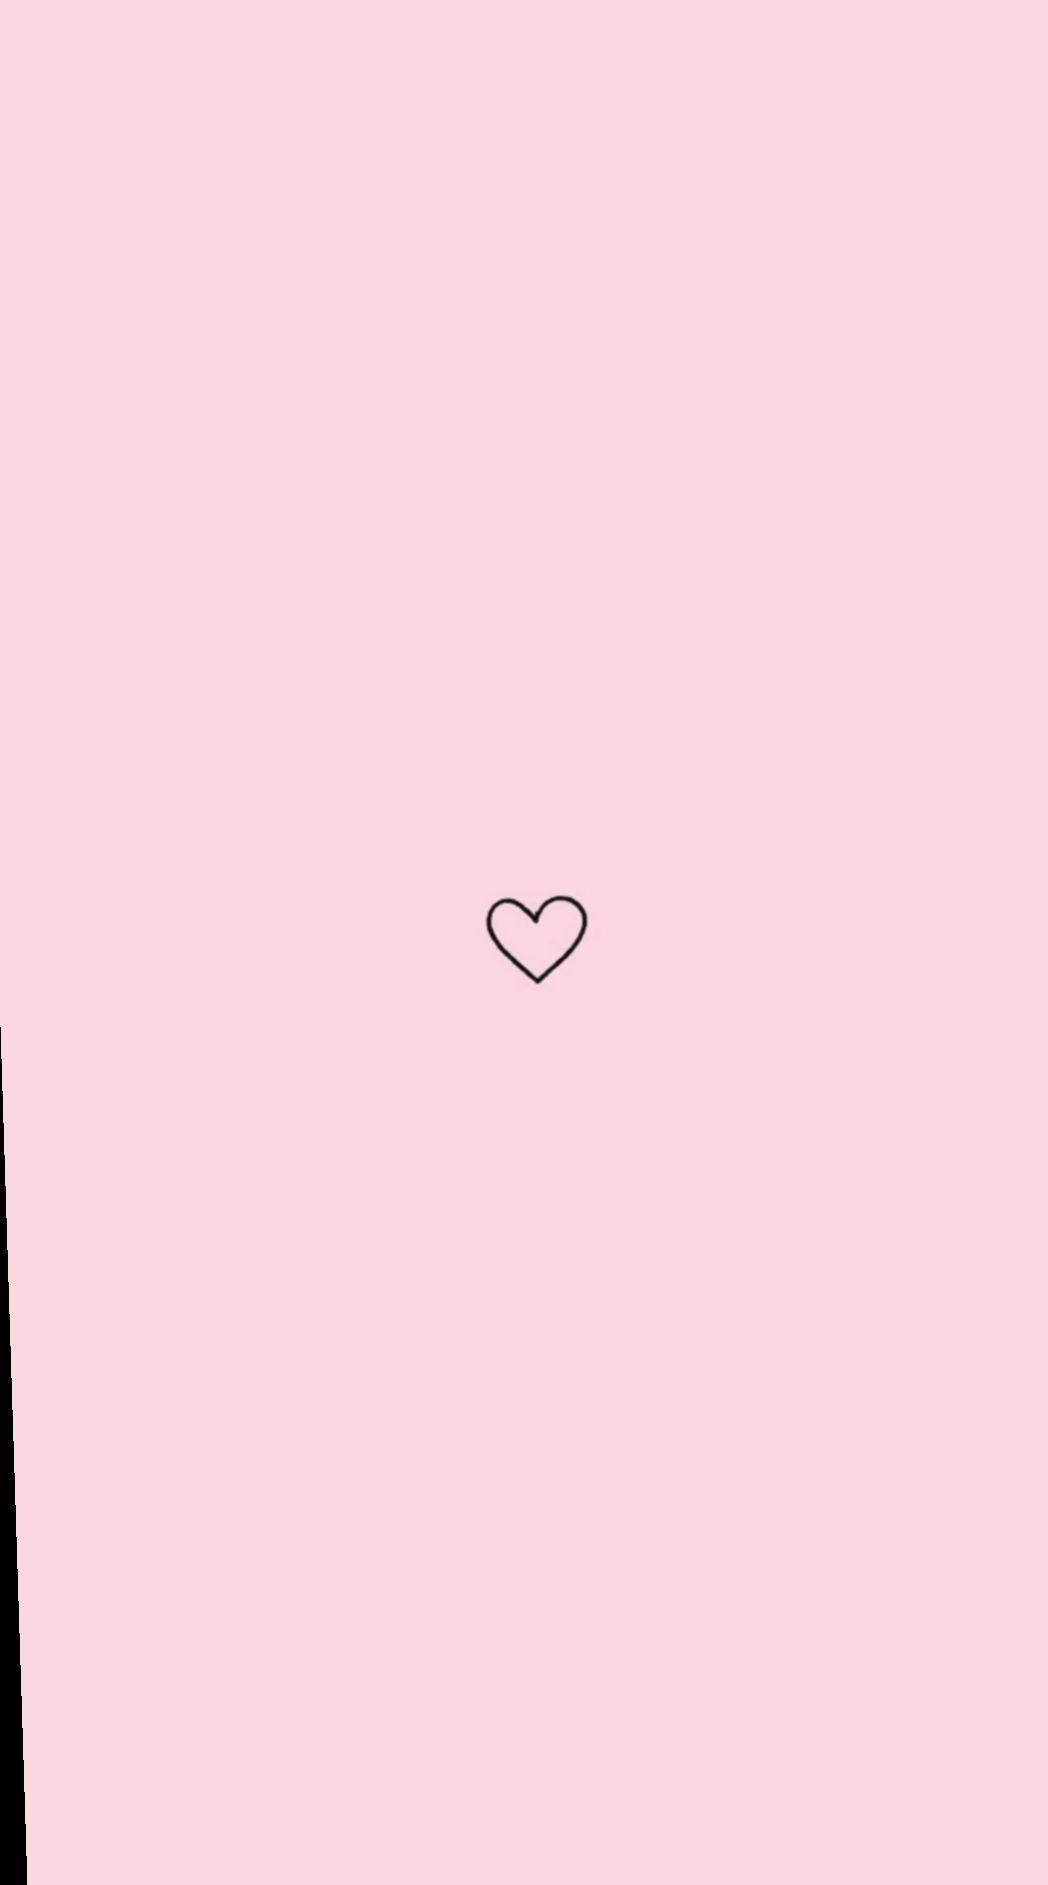 6 Wallpaper Android Pink Heart Pink Wallpaper Iphone Aesthetic